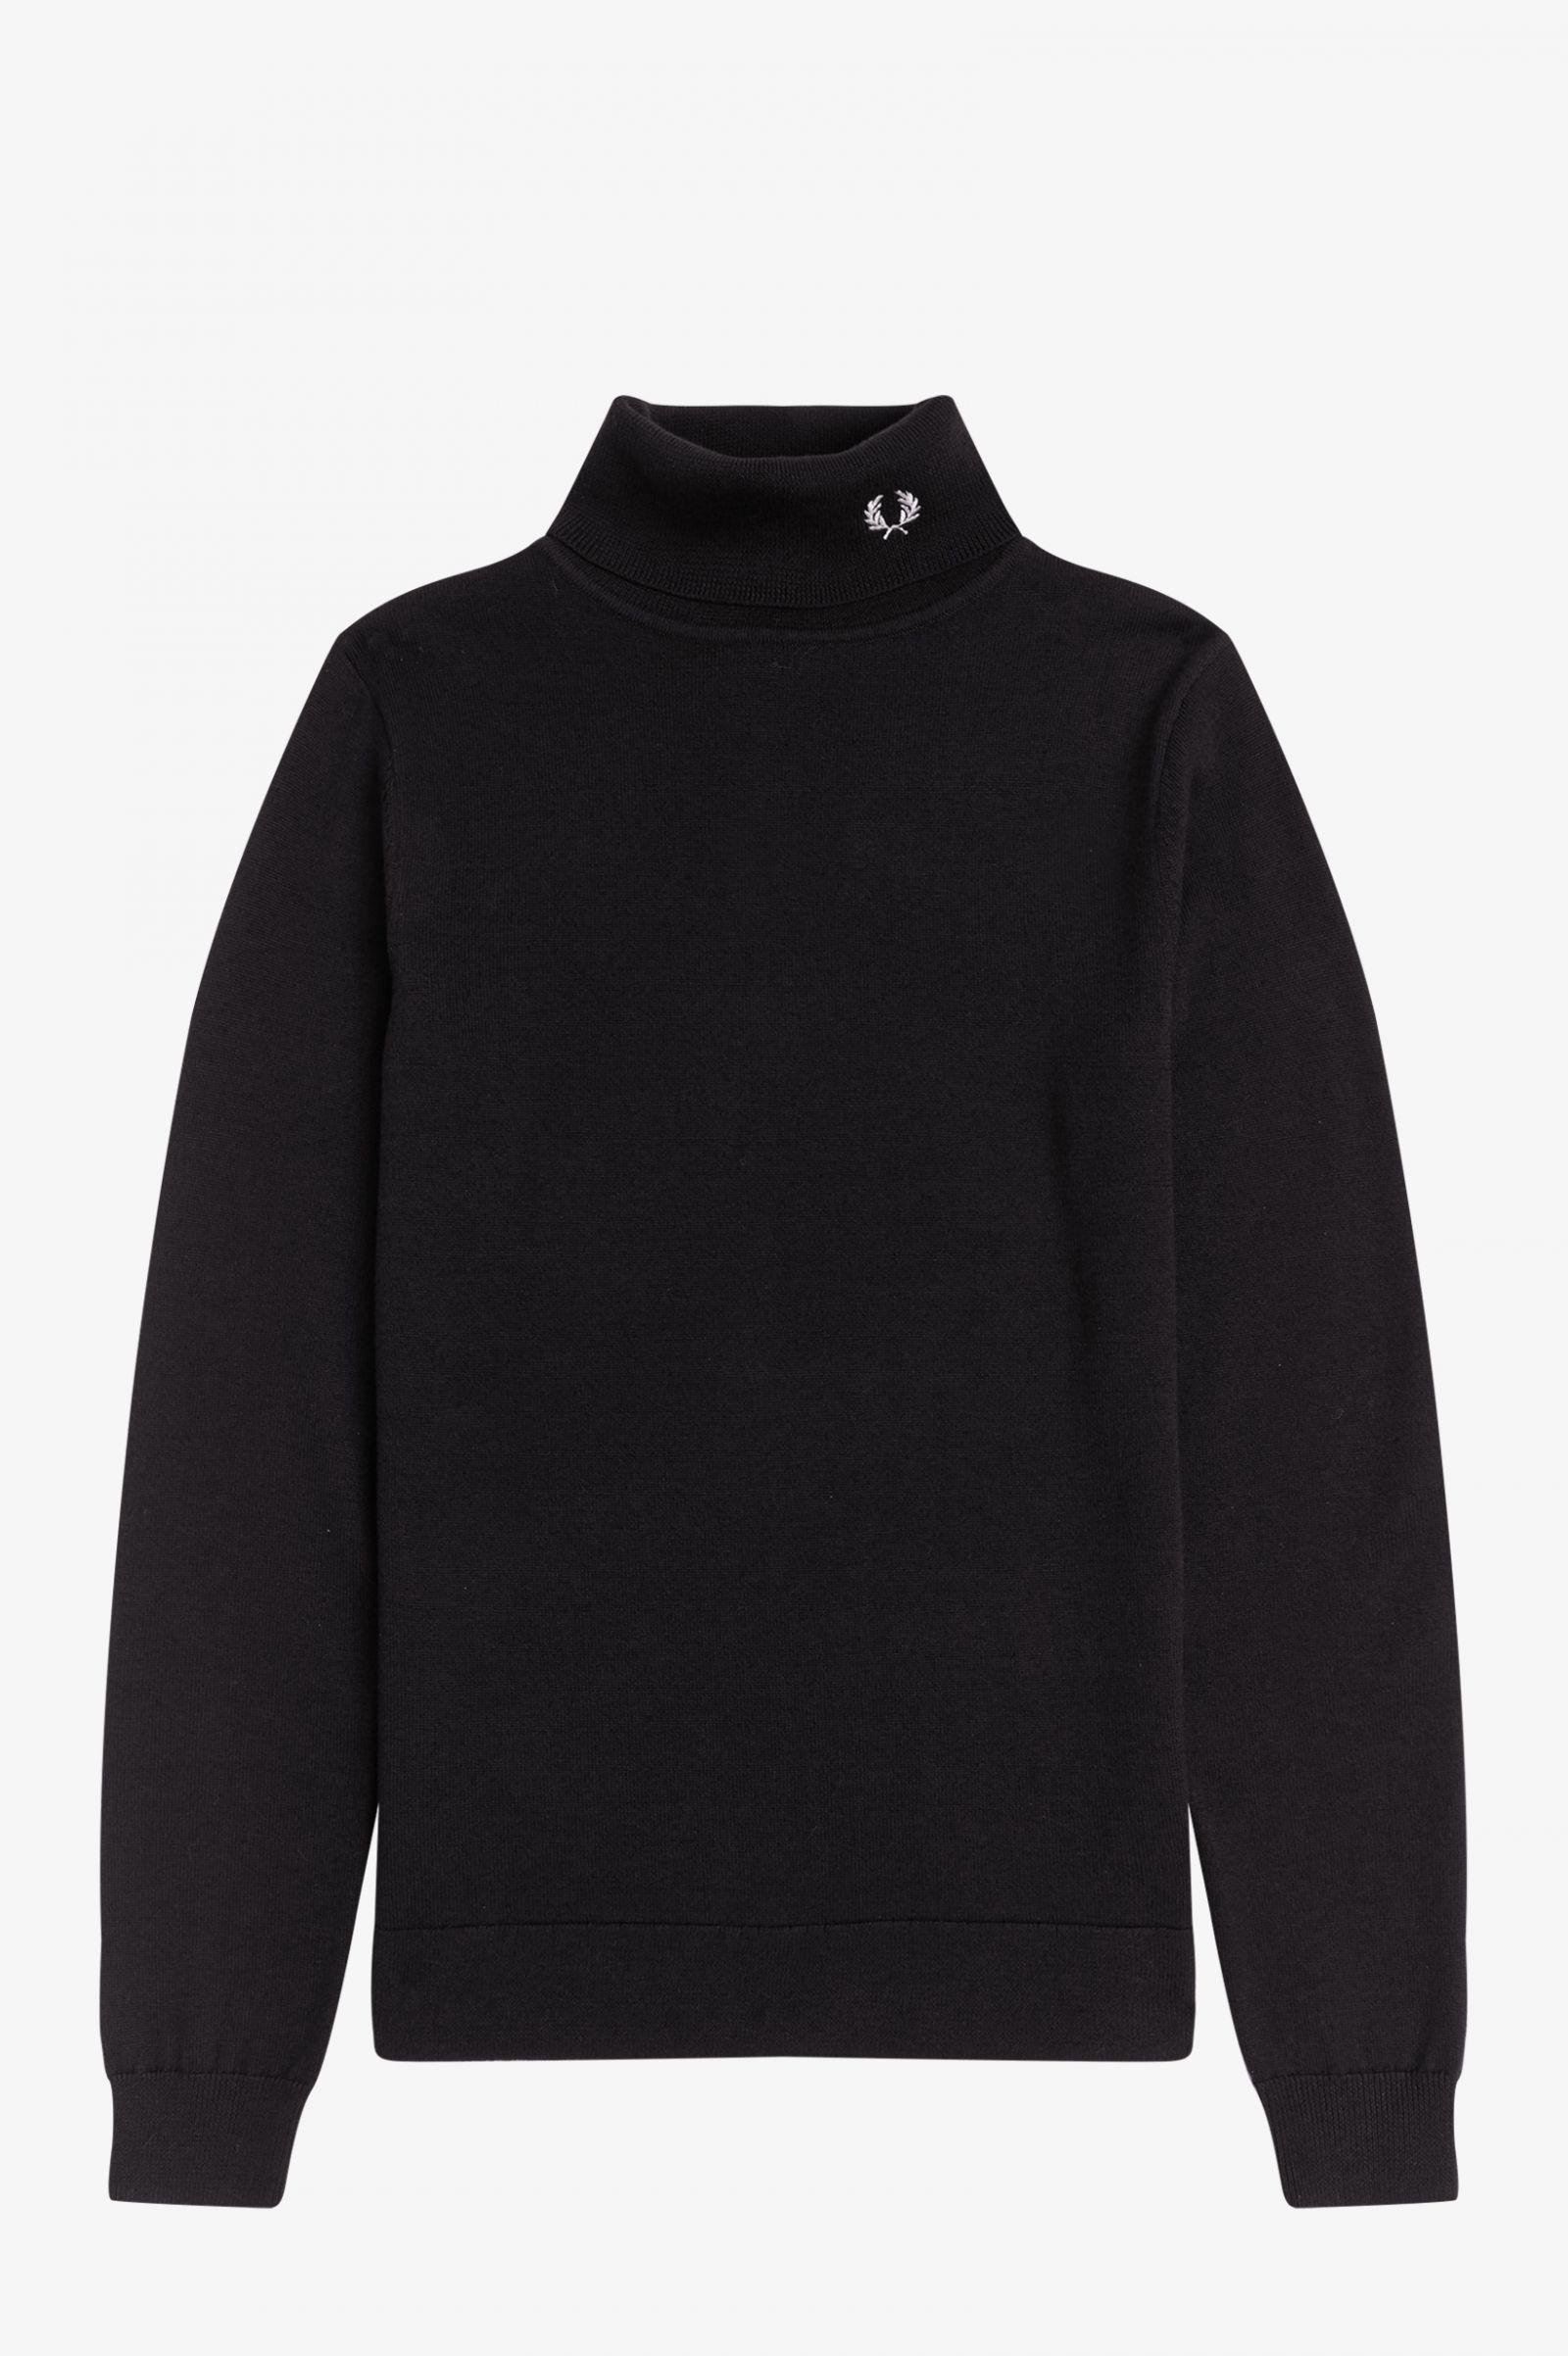 Fred Perry - ROLL NECK KNITTED TOP - Black